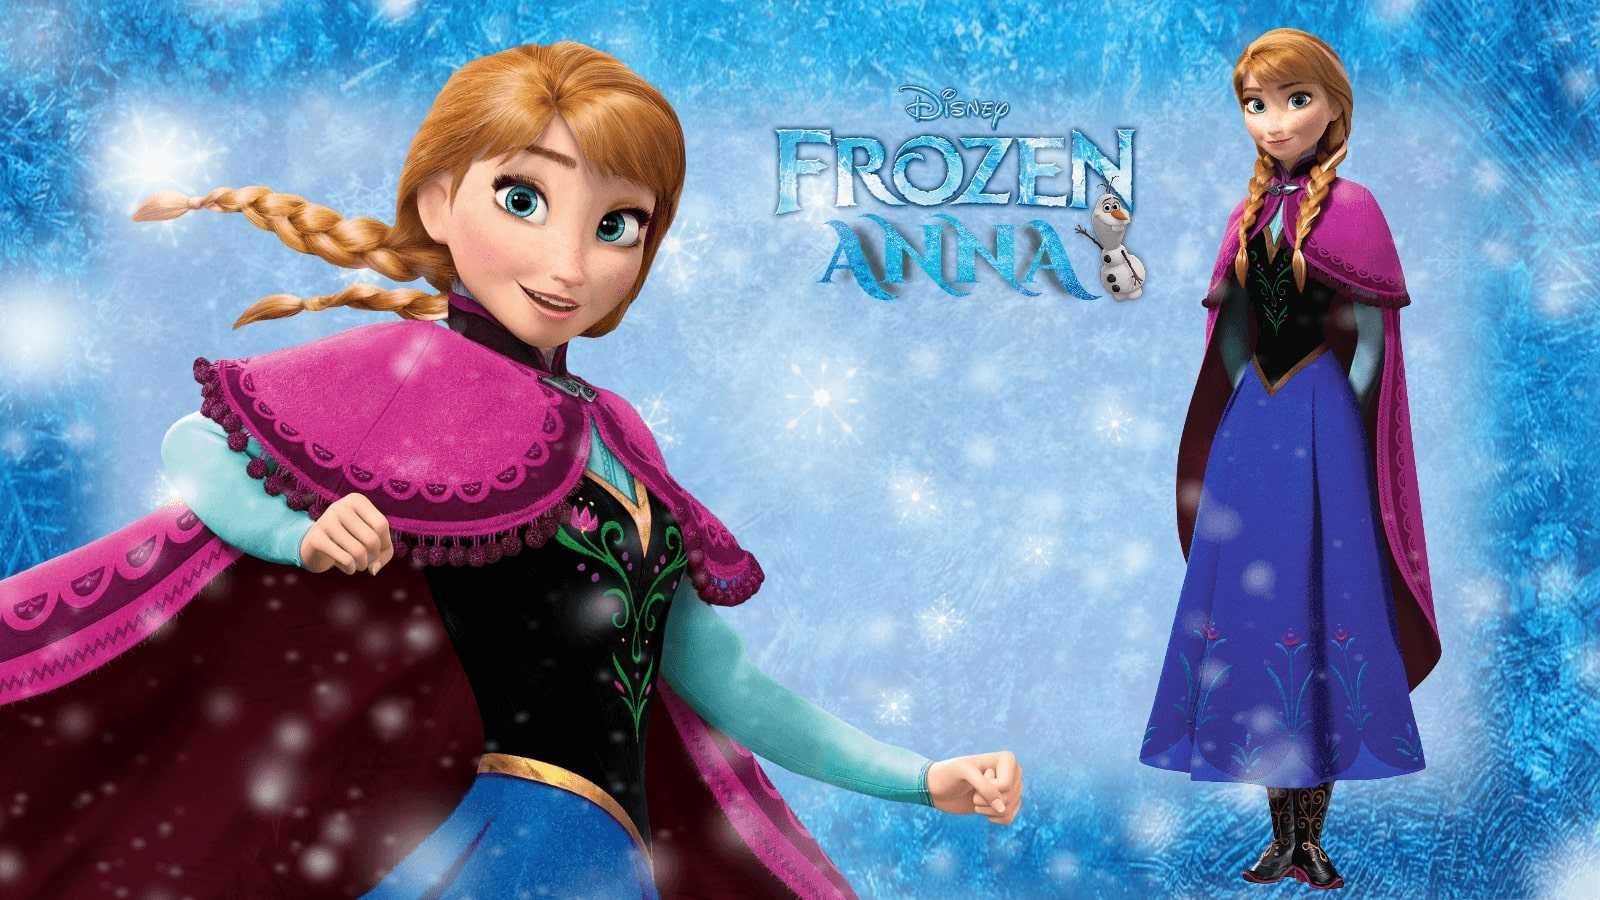 Anna Frozen Wallpaper